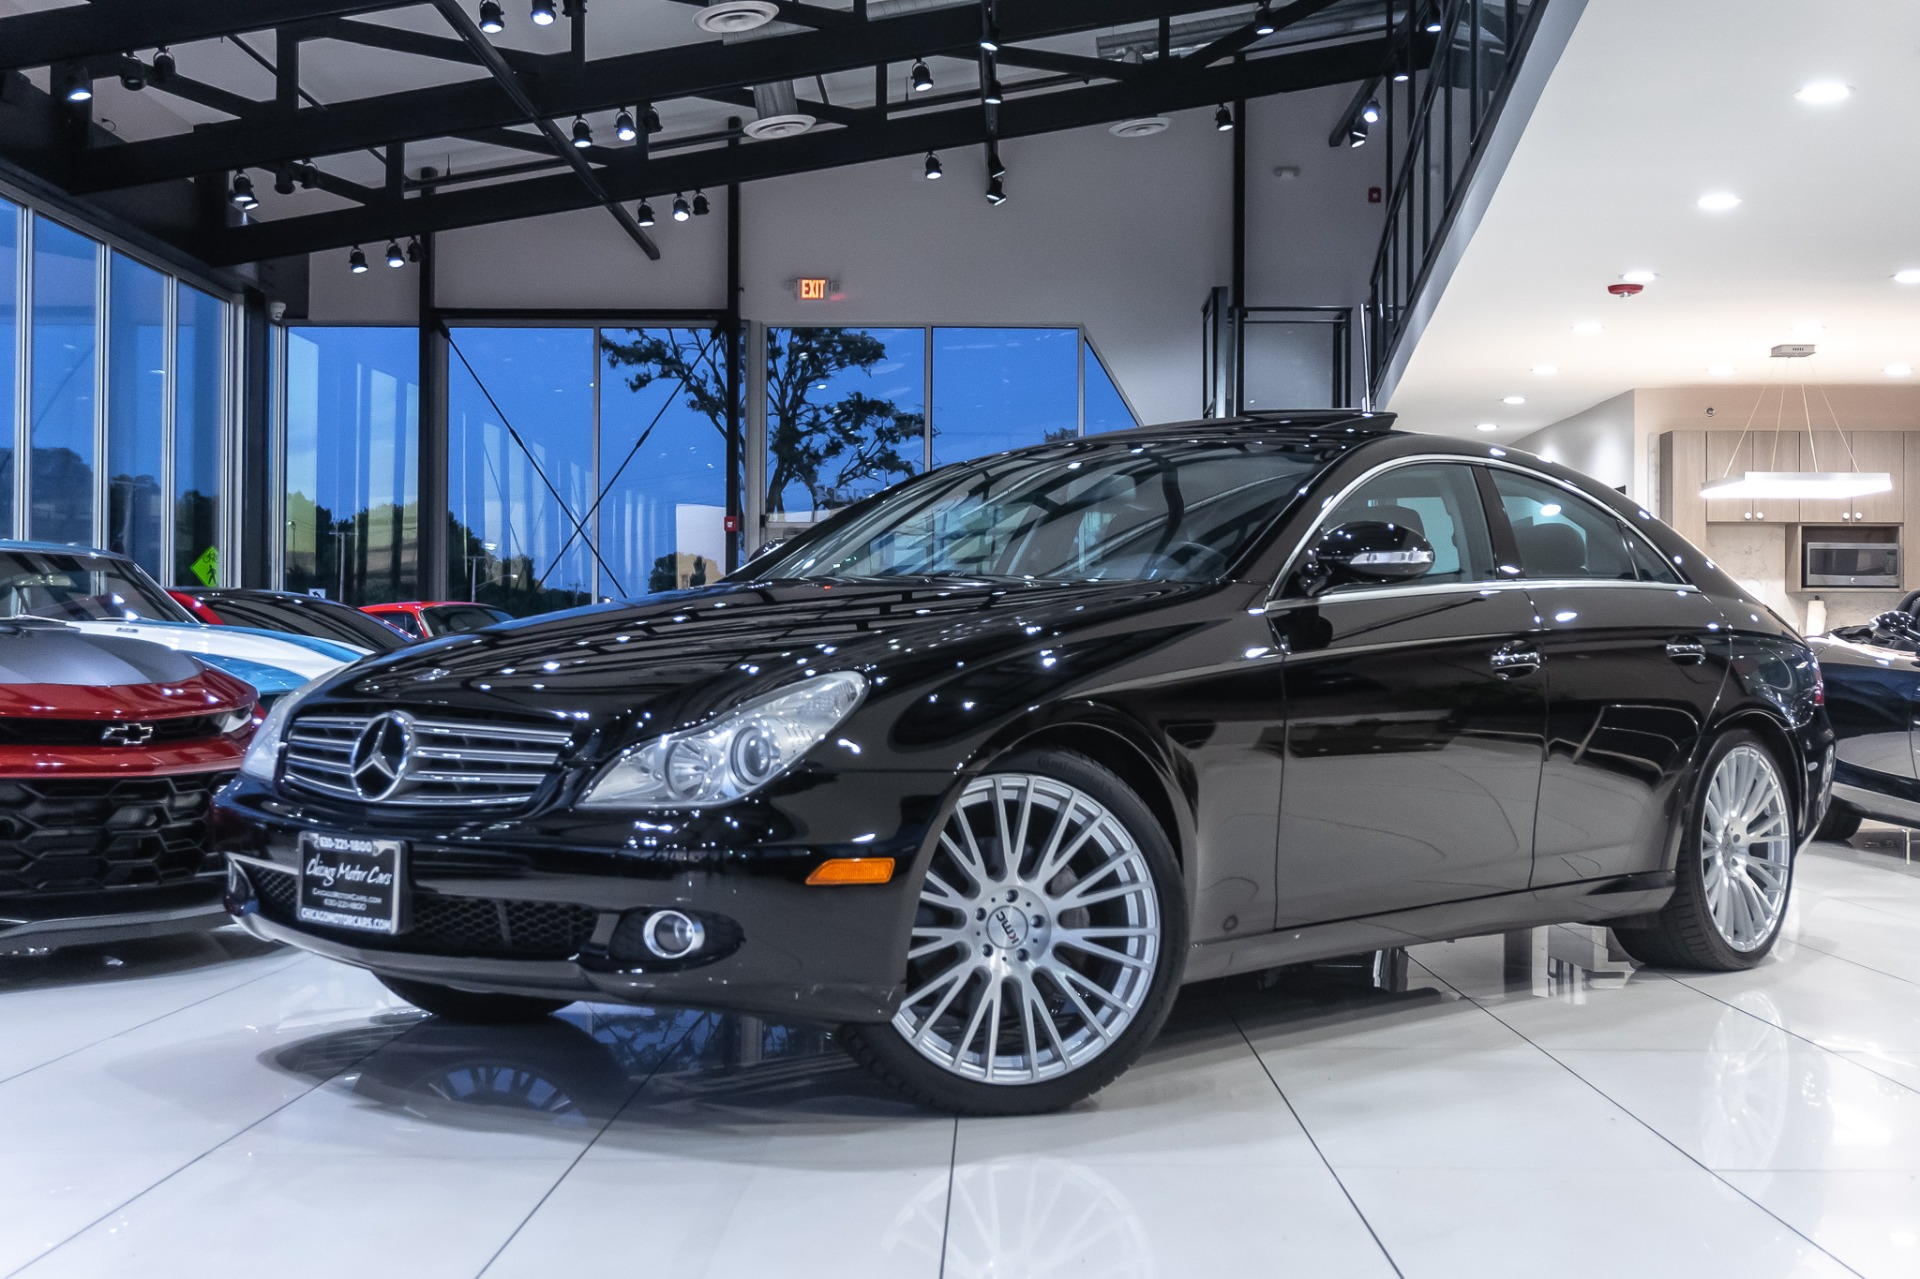 Used-2008-Mercedes-Benz-CLS550-SEDAN-HEATED-SEATS-AFTERMARKET-WHEELS-ONLY-70K-MILES